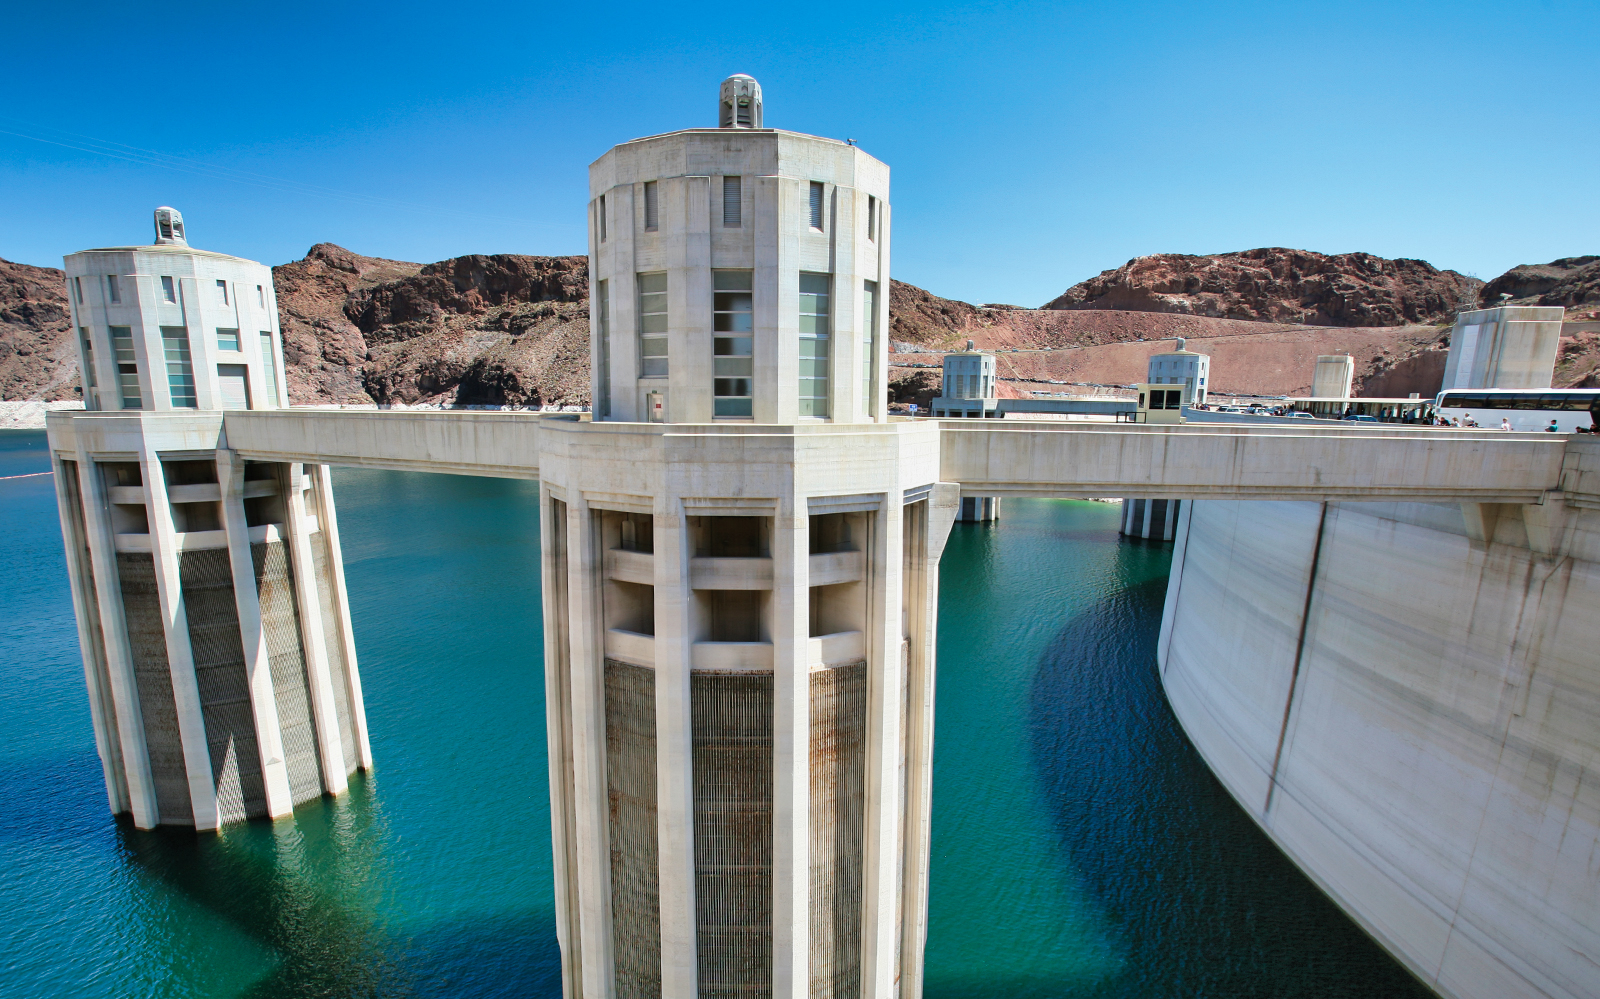 Images of Hoover Dam Tour - #rock-cafe